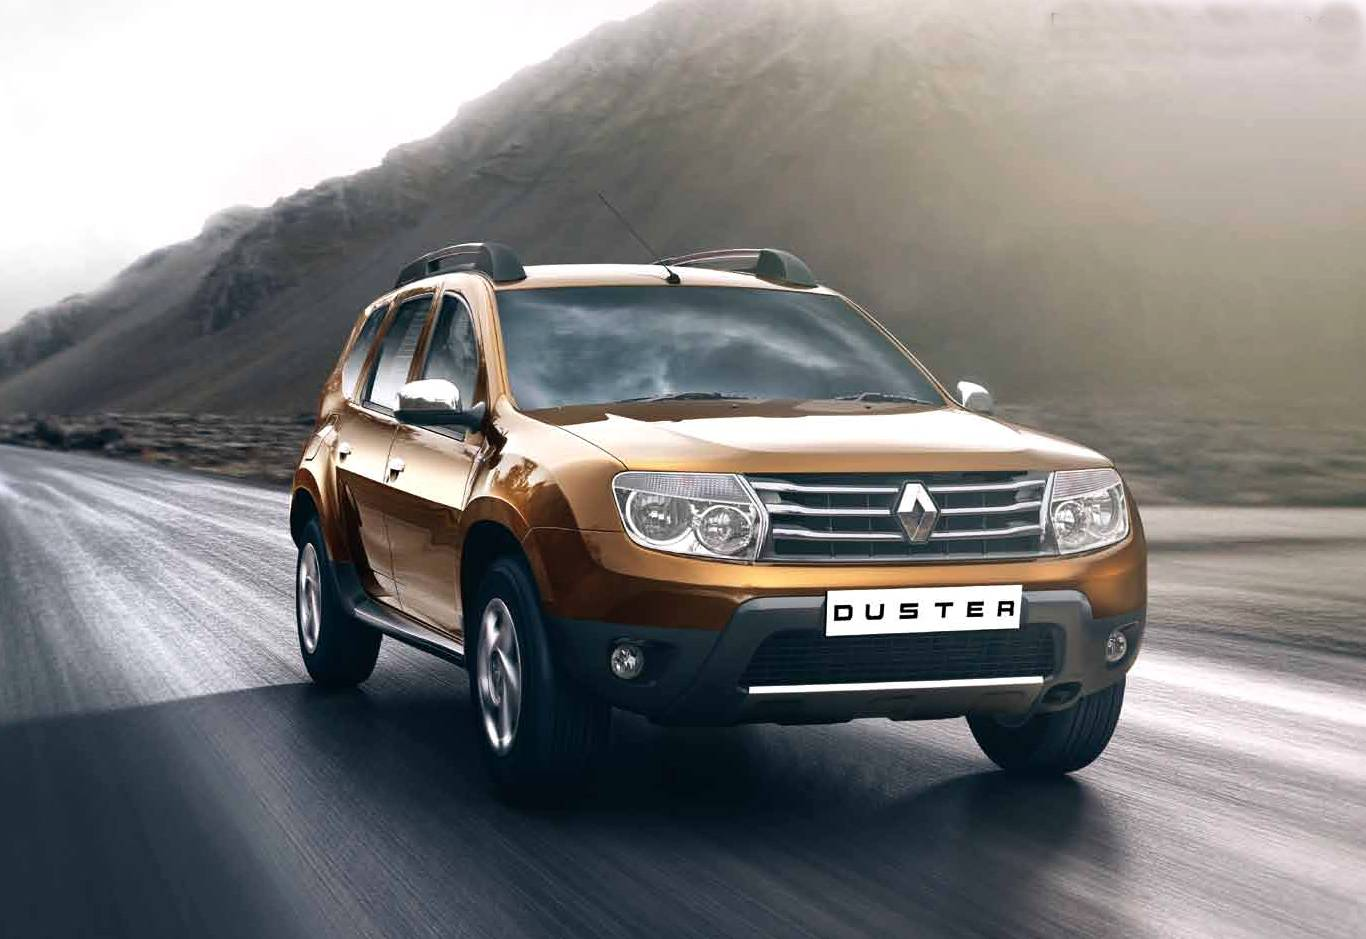 Renault Duster White Wallpaper Renault Duster hd Wallpapers